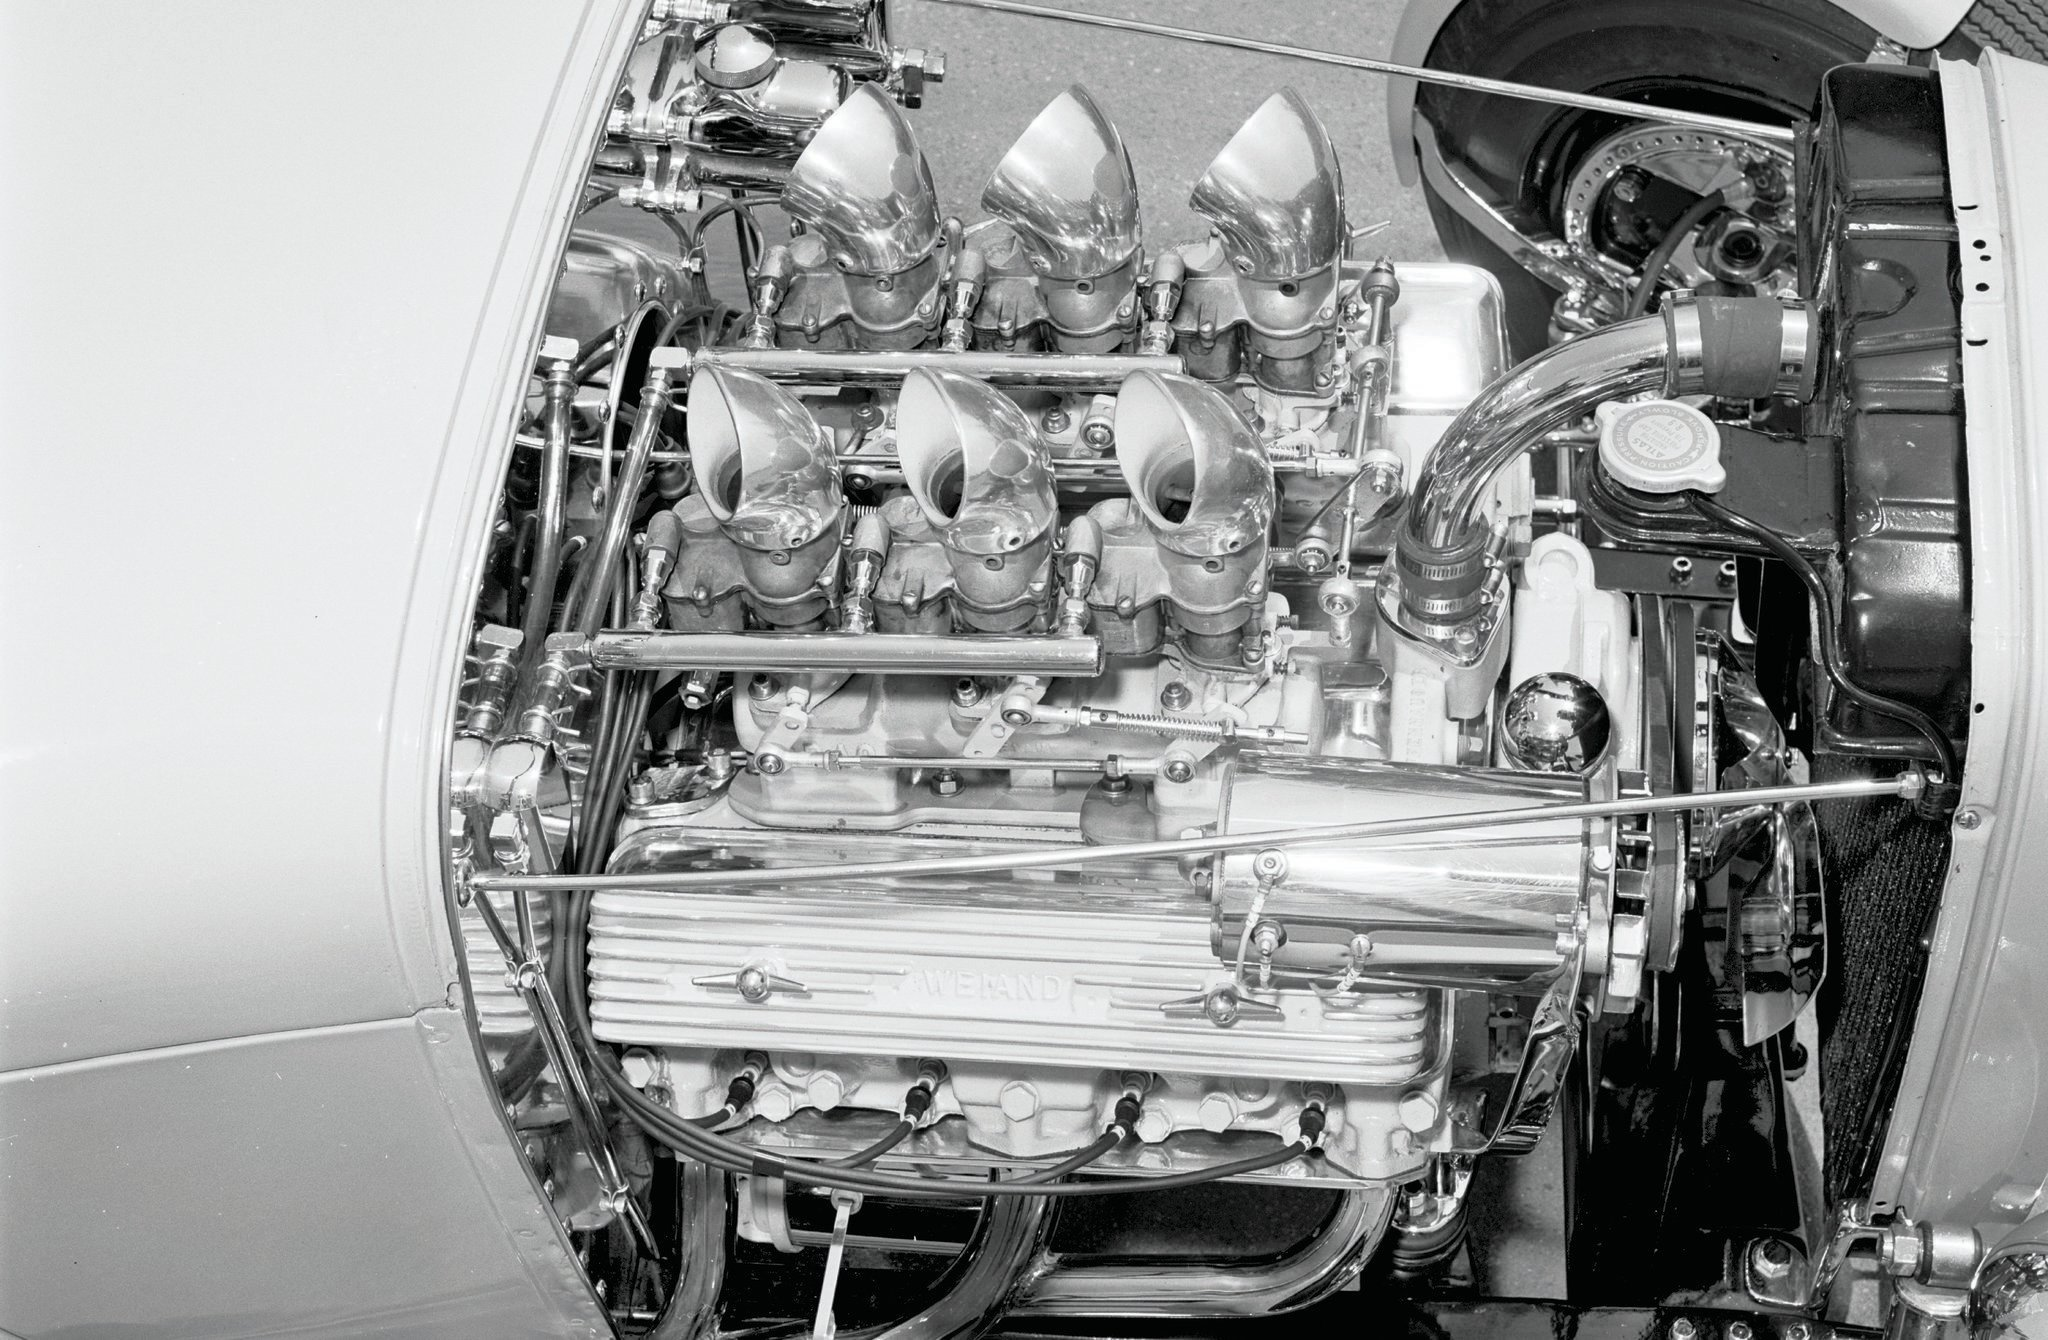 Ken gave away the Model A's original engine and transmission, and Woodie found for him a hotted-up Olds mill built by Bill Rogers. It's bored out to 338 inches and fitted with an Engle 3⁄4 cam and a Weiand Drag Star intake. Here's how it looked in 1961.